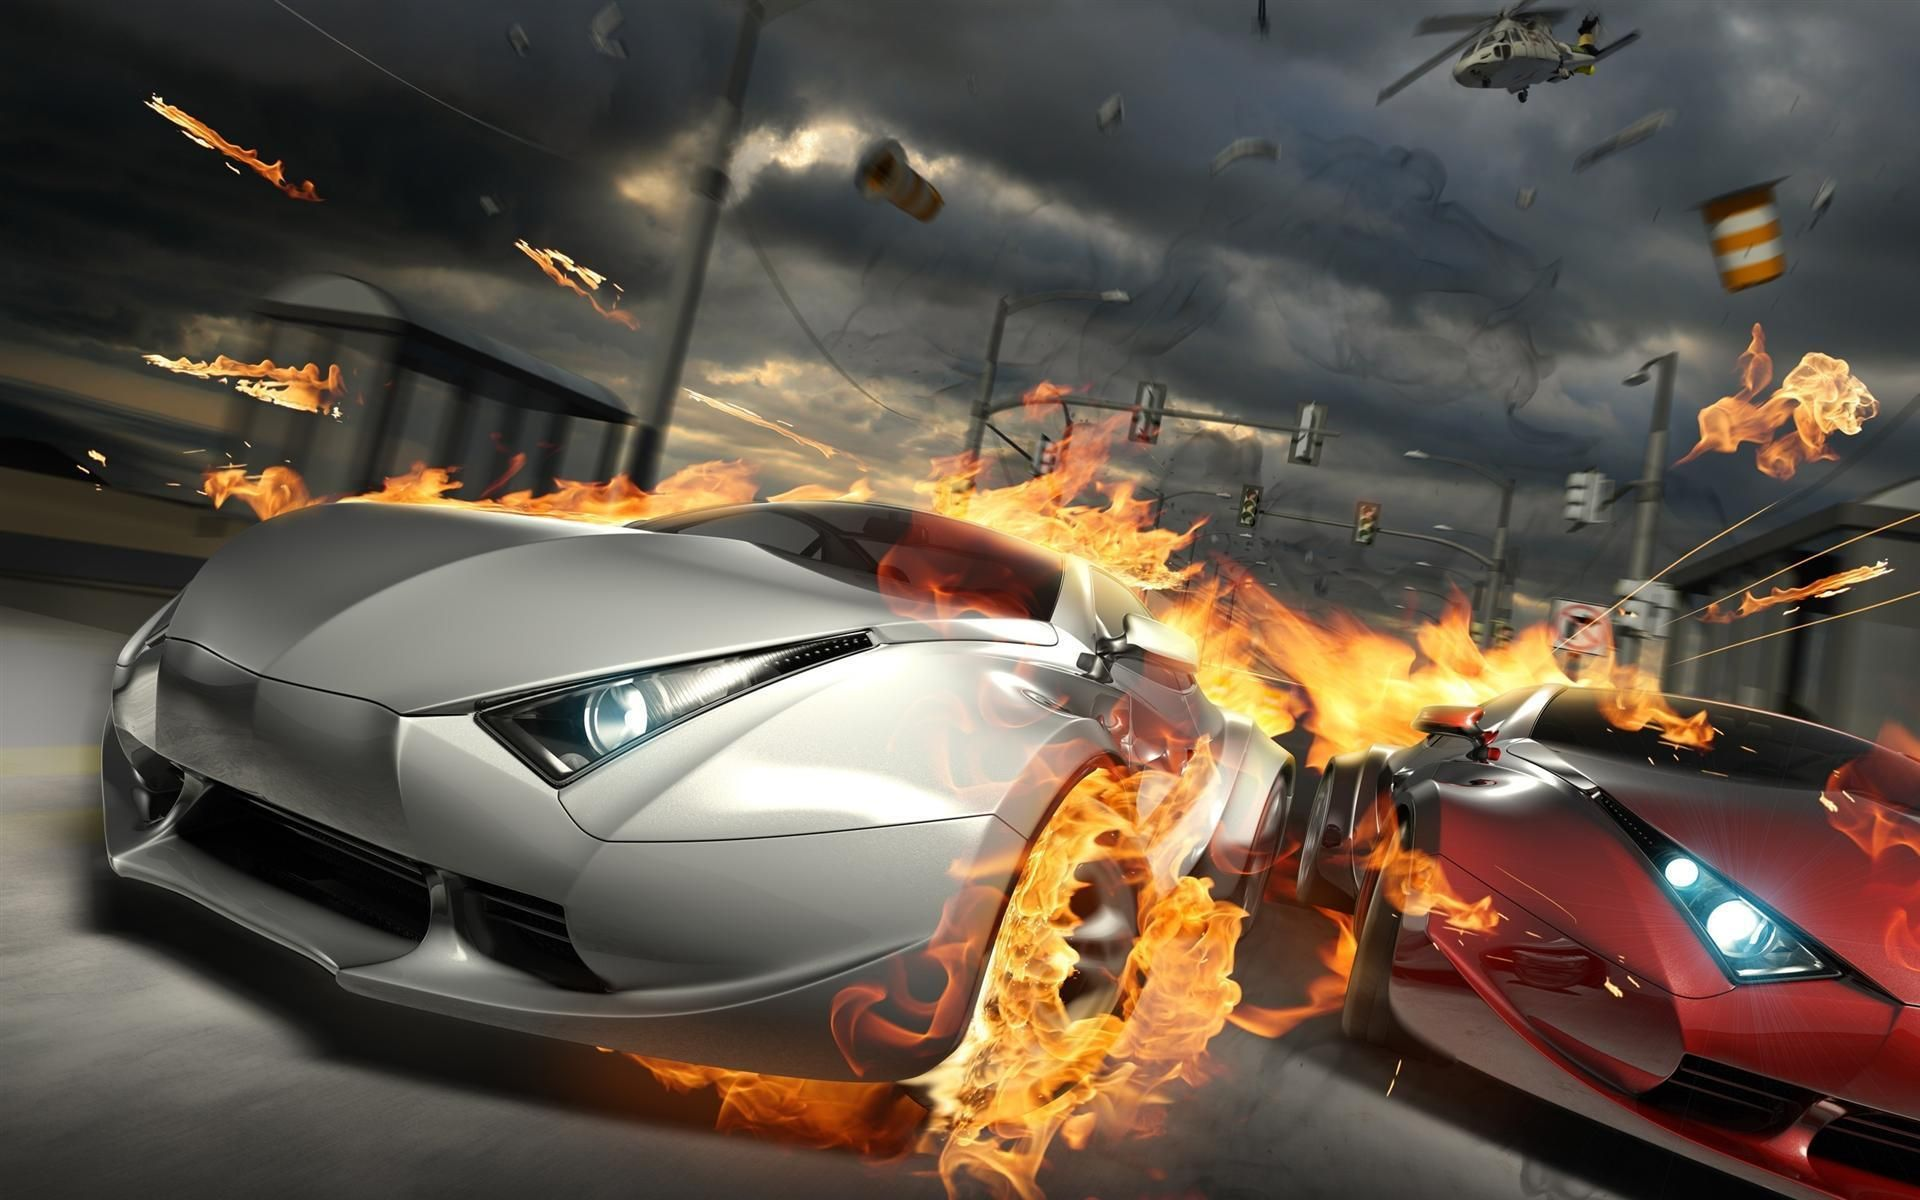 3d Car Wallpaper Best 3d Cars Hd Free Desktop Wallpapers Kk 3d Wallpaper